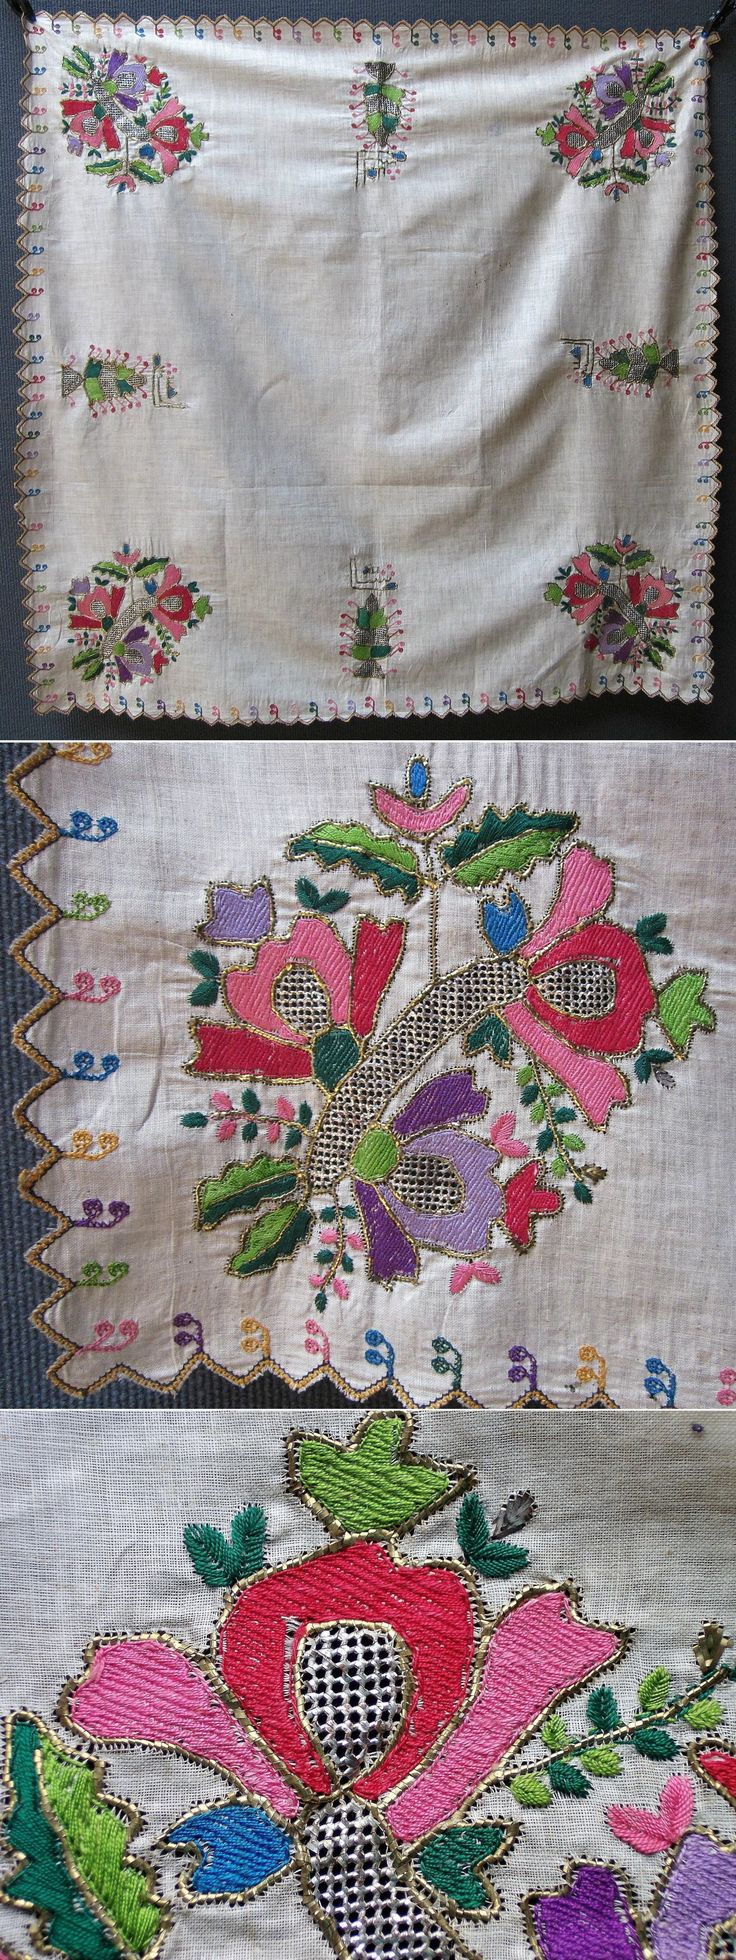 A 'çevre' (square kerchief; a decorative accessory, for the interior). From the Aegean region, urban style, 1900-1925. The embroidery is 'two-sided' (identical on both sides) and executed with silk, and 'gold' & silver strips (in 'tel kırma'-technique) on cloth. Design: stylized floral motifs. (Inv.nr. brdw011 - Kavak Collection of Anatolian Textiles -Antwerpen/Belgium).